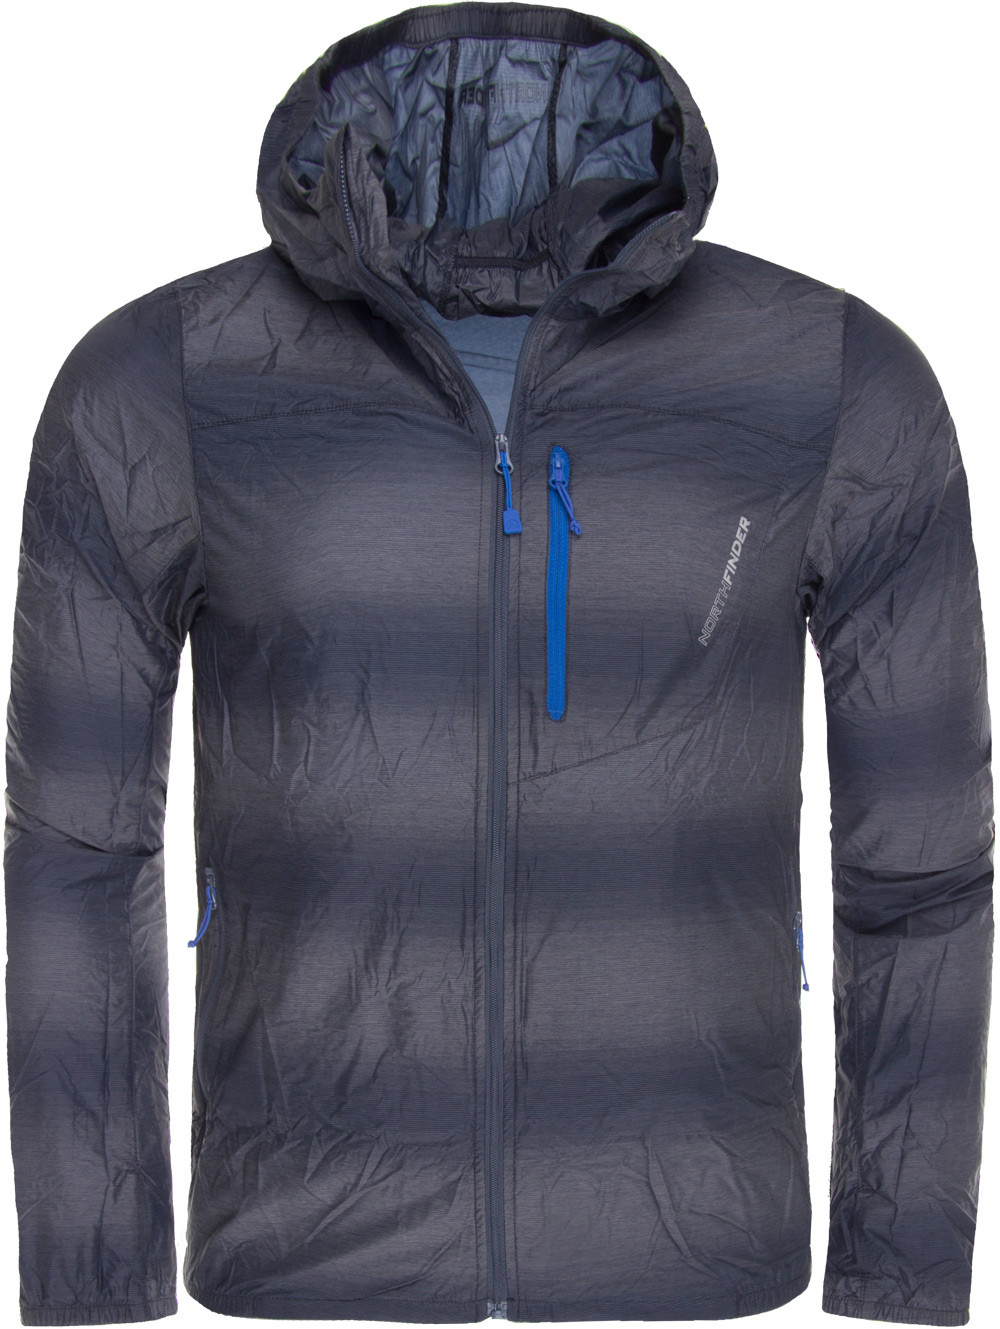 Men's winter jacket NORTHFINDER DAKOTA